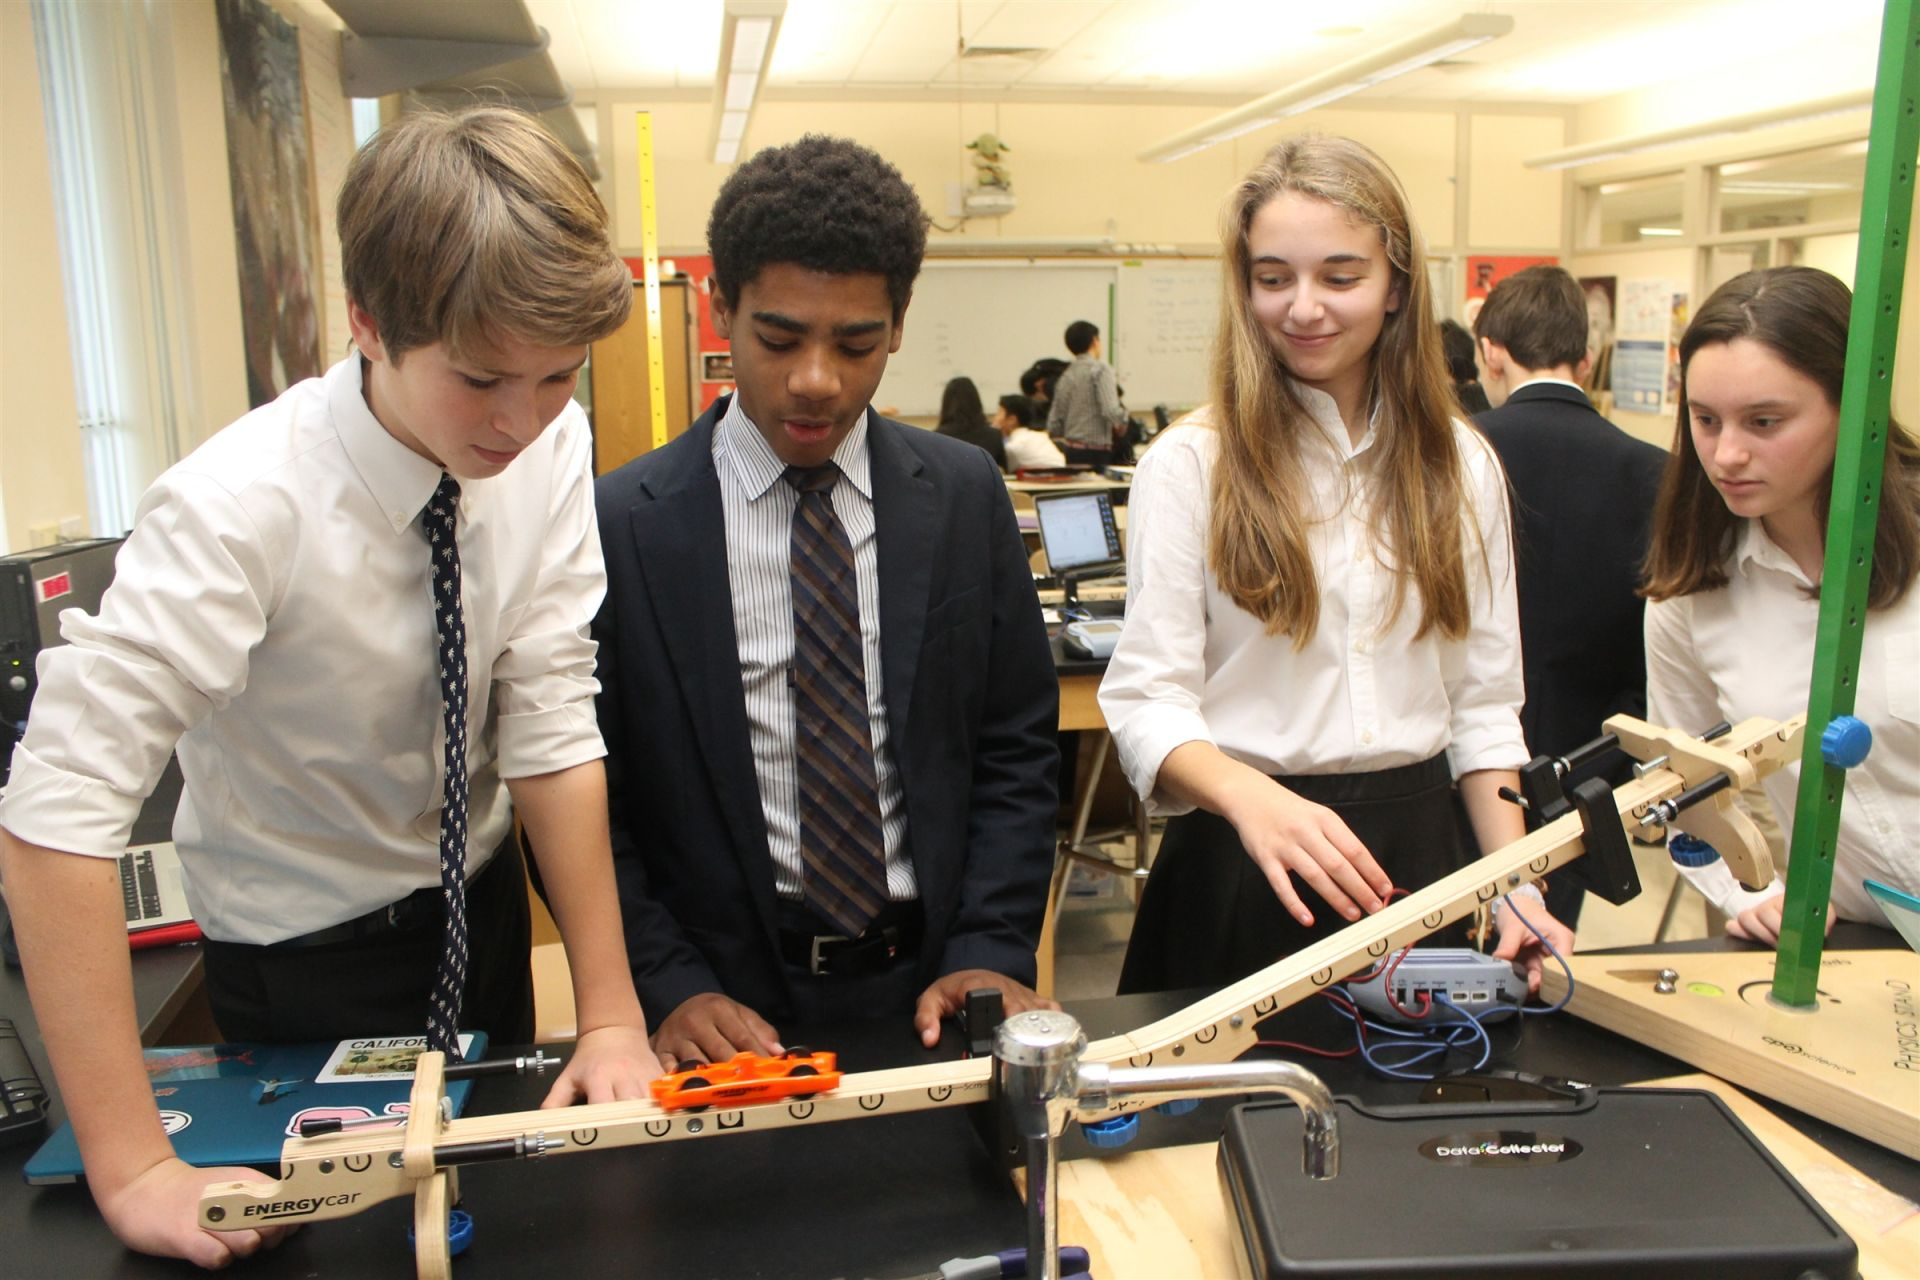 In Physical Science, eighth graders explore the properties of electricity, force and motion, and chemistry through lab-based units. Some of the highlights include a rocket simulation program in which students collect data from their own rocket launches to study the relationship between speed and acceleration. Students also love using our LEGO Mindstorm robots, where they write code to manipulate sensors and motors so the robots can perform specific tasks.